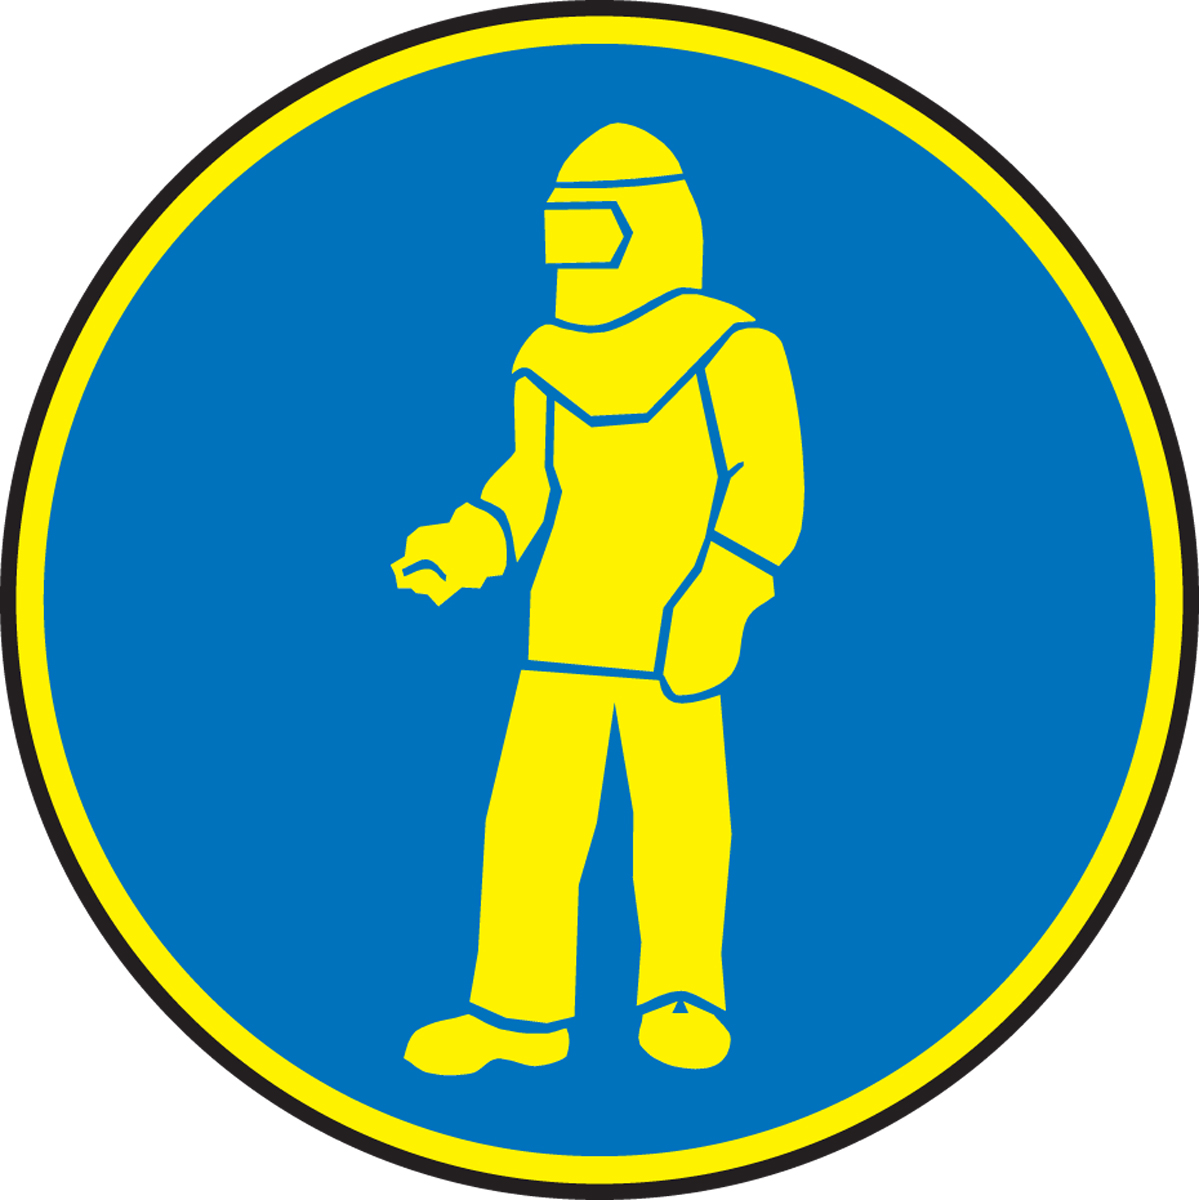 WEAR FULL PROTECTIVE CLOTHING (YELLOW/BLUE)